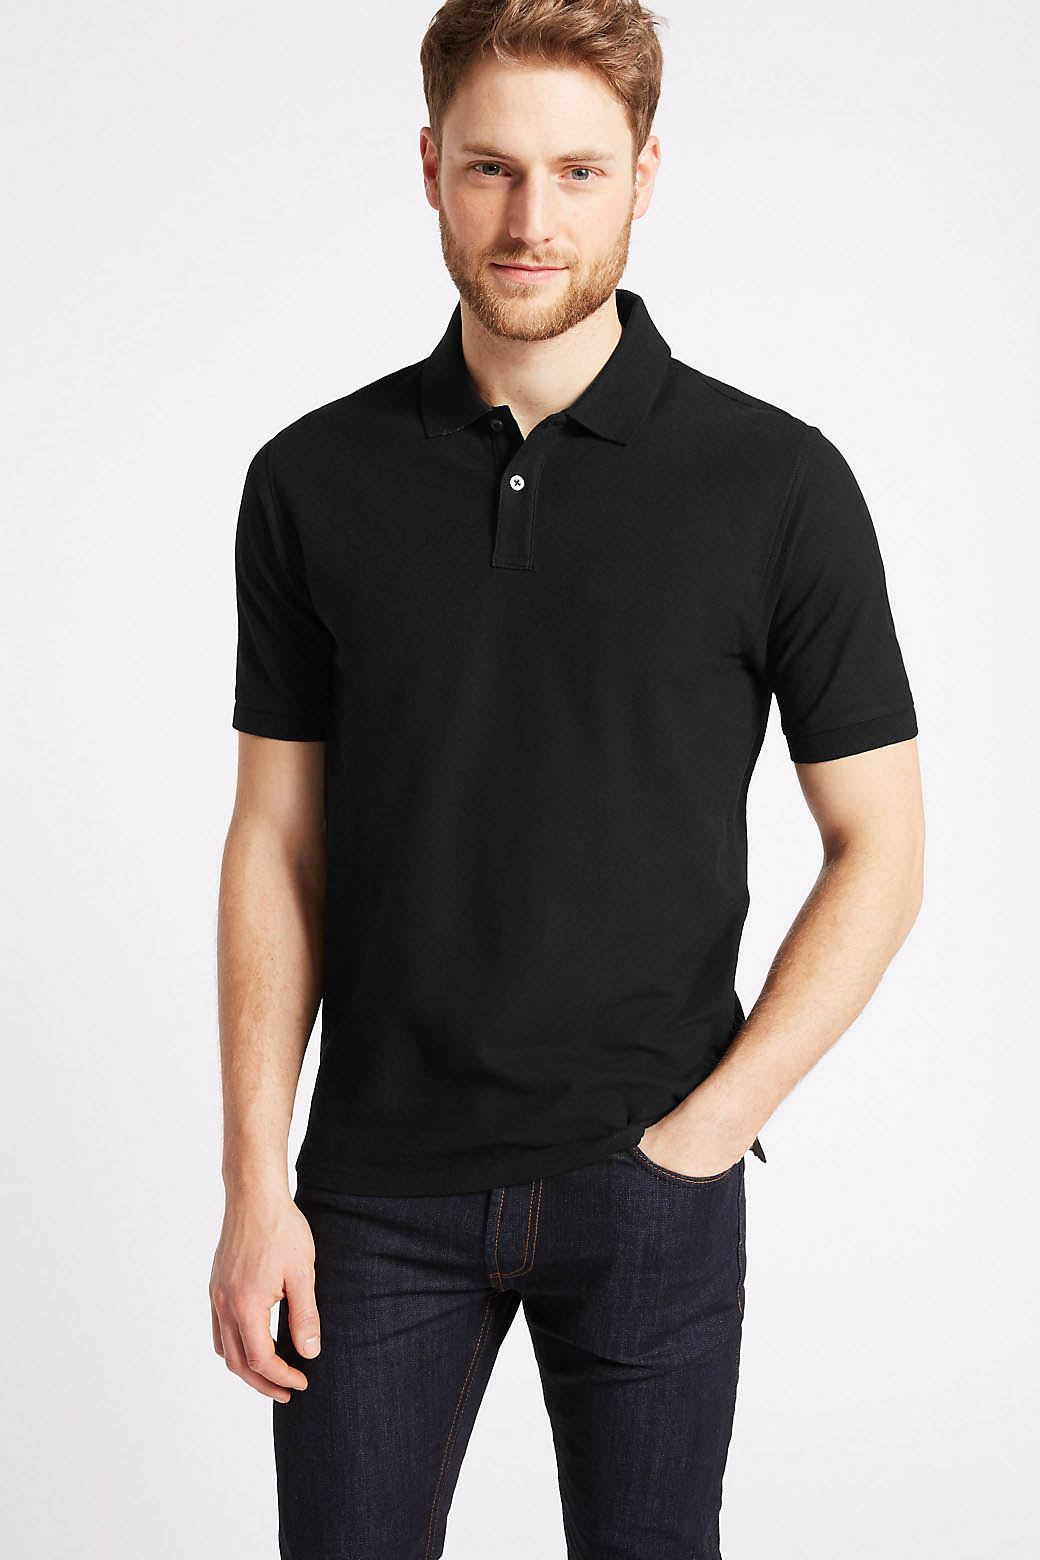 Ex-Marks-and-Spencer-Mens-Cotton-Pique-Polo-Shirt-NEW-Sizes-S-3XL thumbnail 6